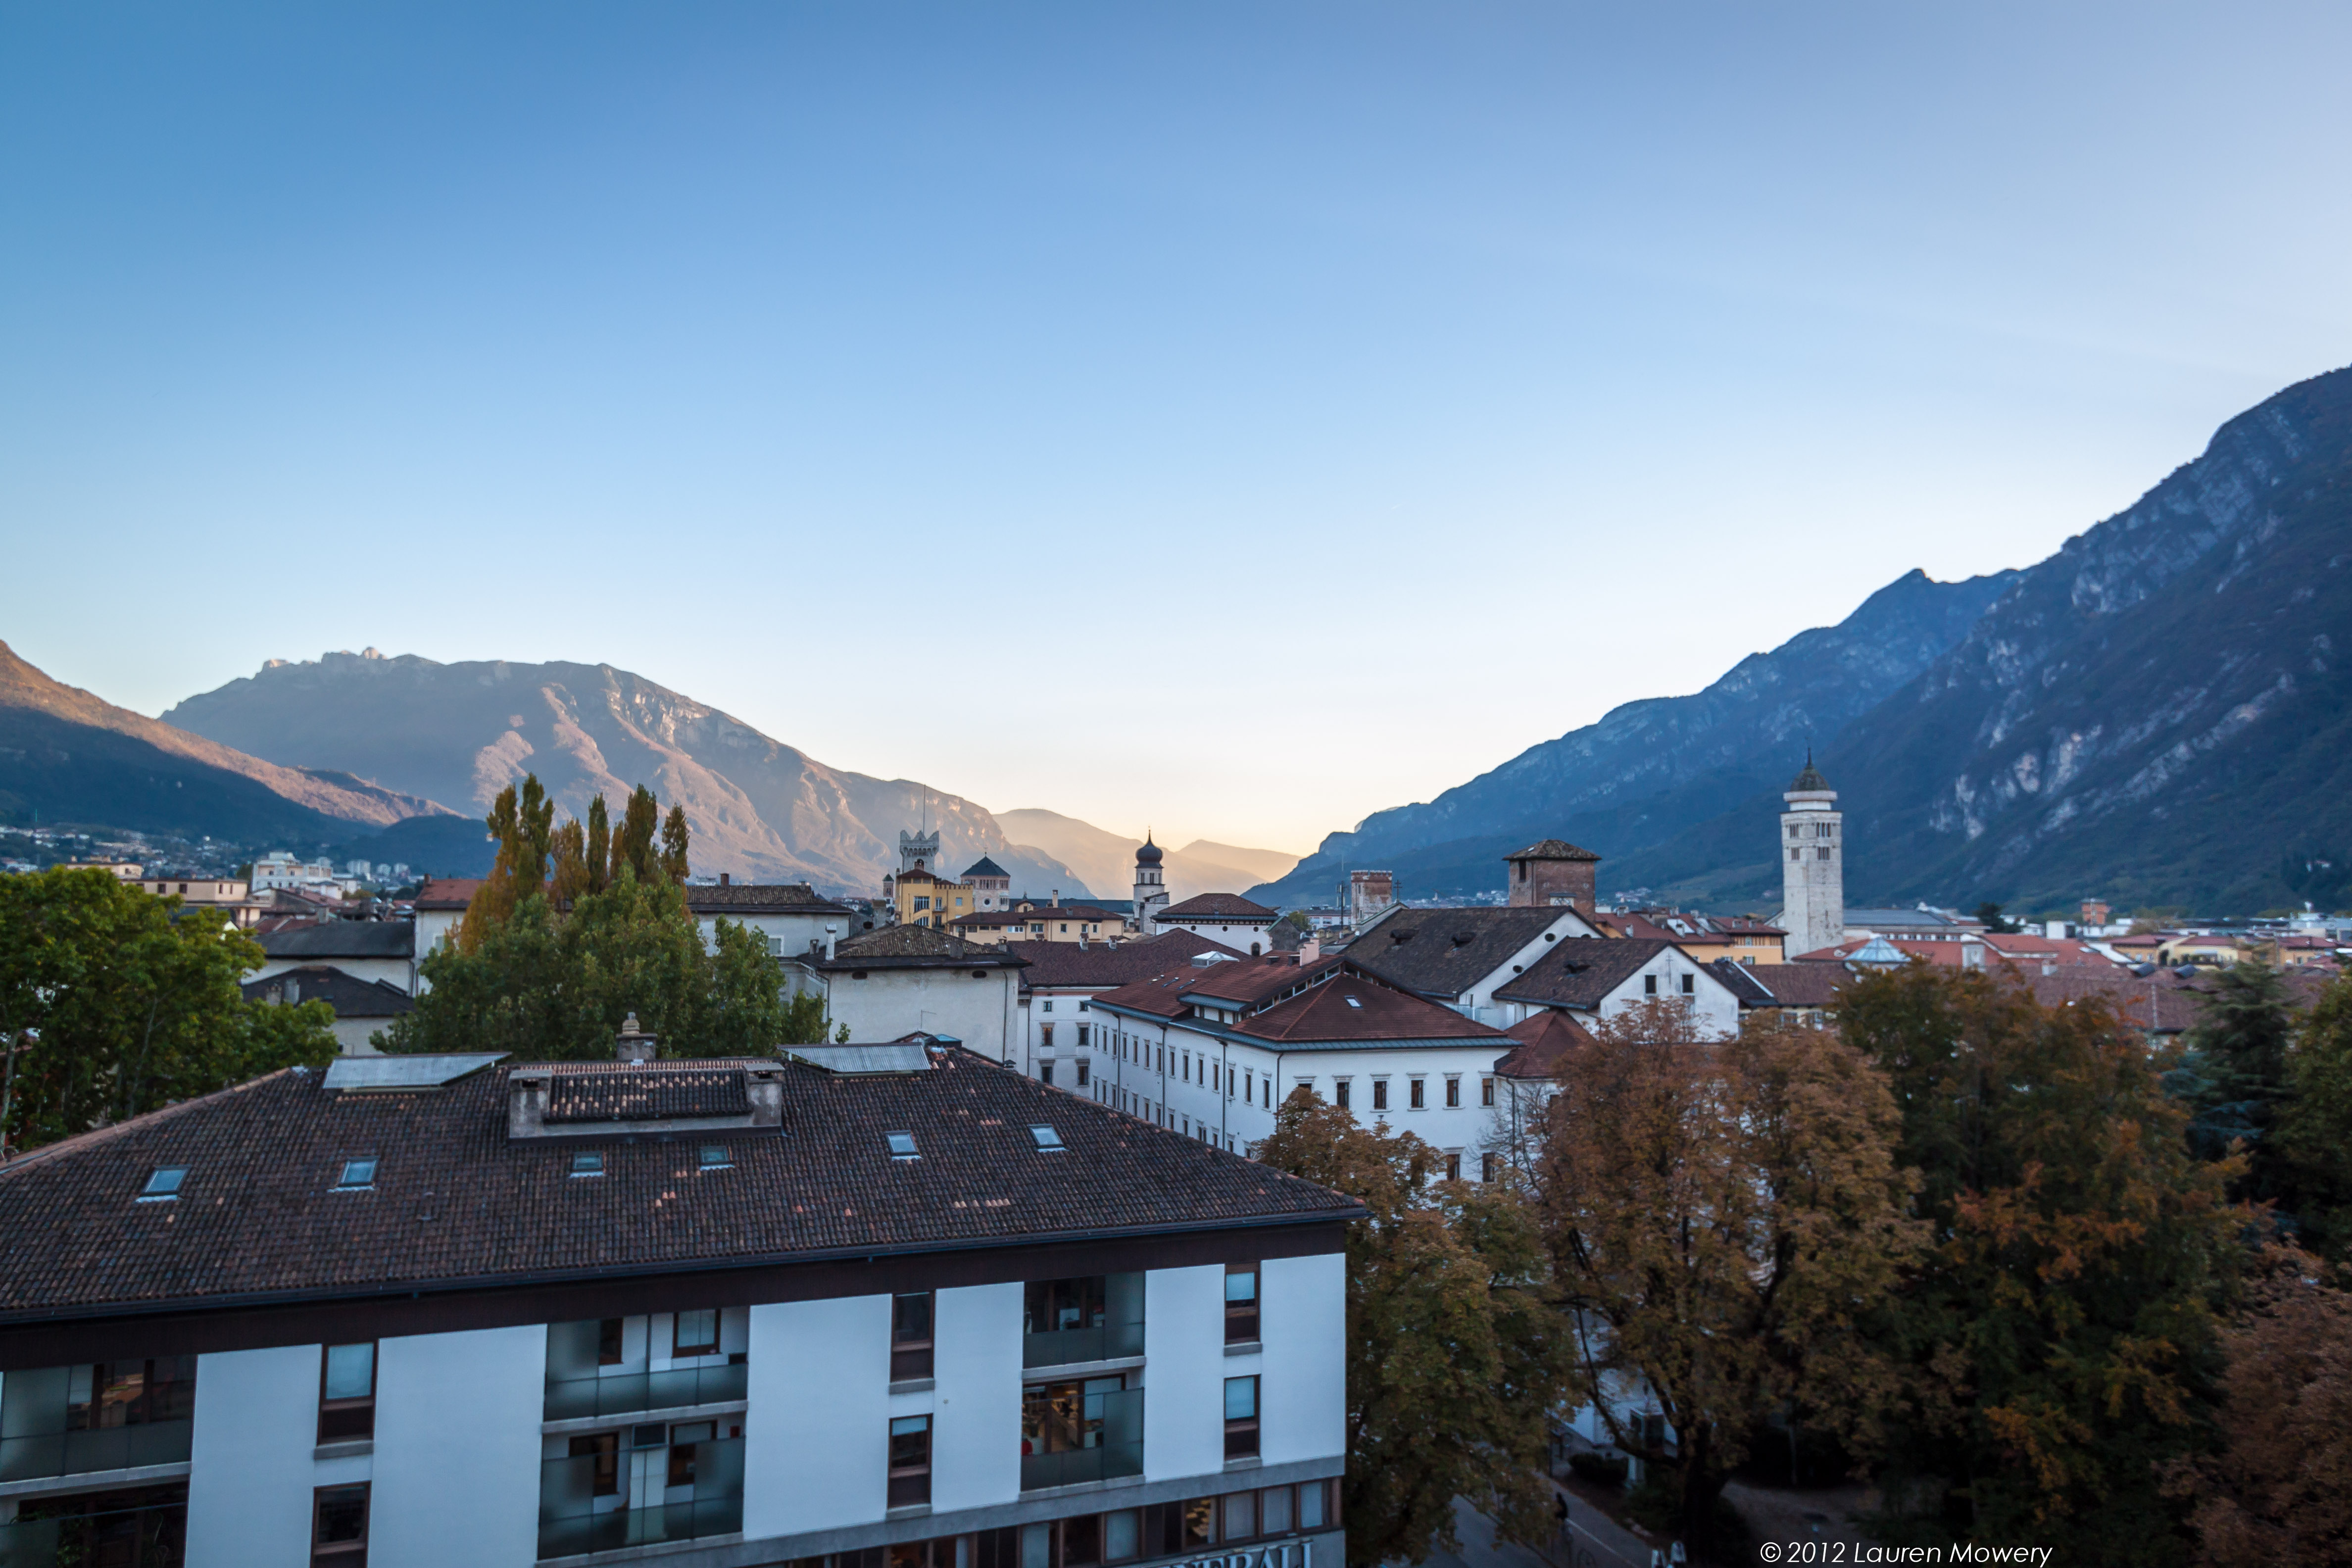 Trento Italy  City pictures : Where I am going – Trento, Italy for Metodo Classico Camp | CHASING ...